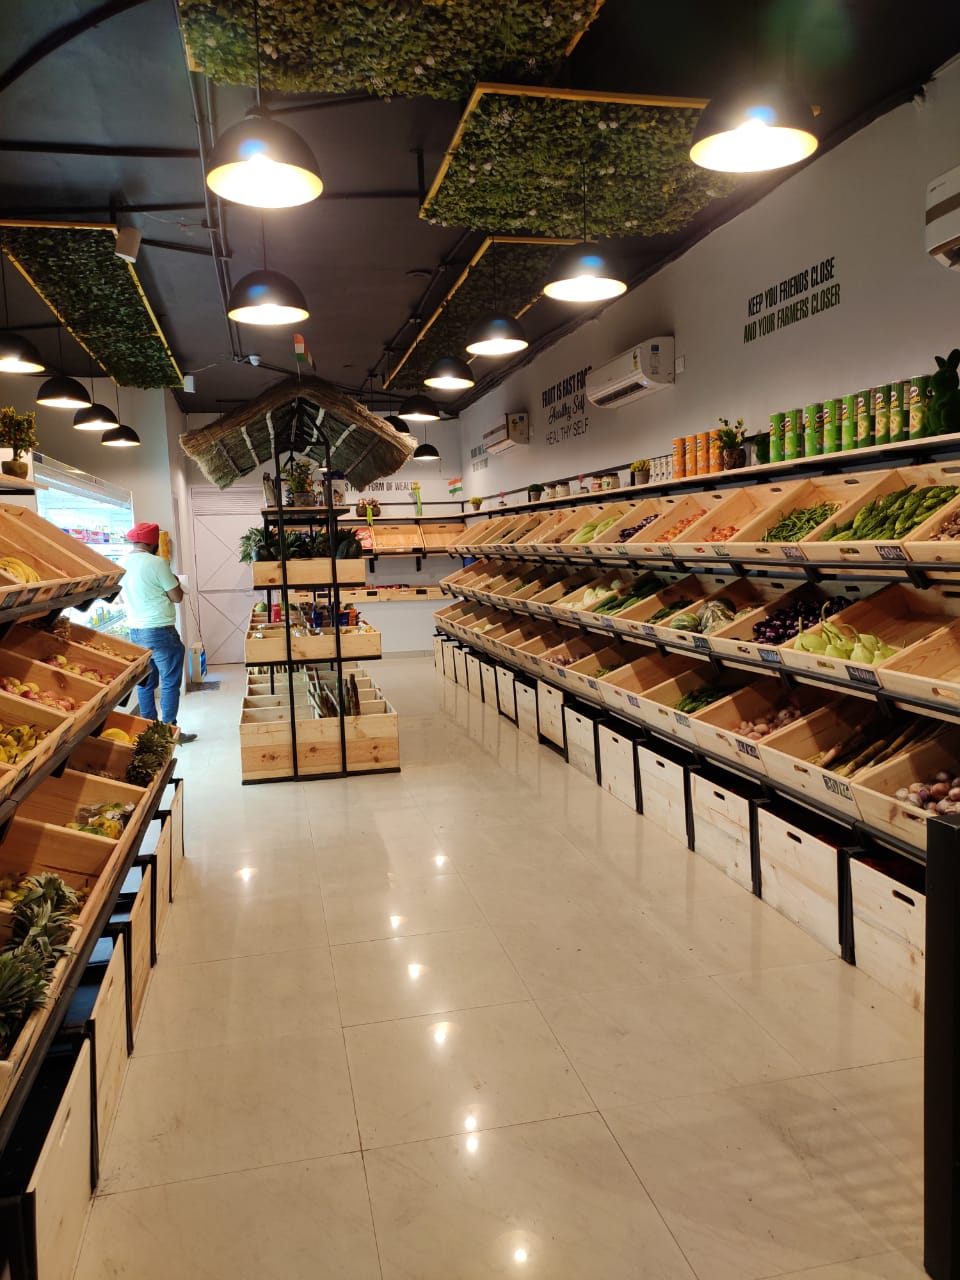 New Opened Chain of Retail Grocery Stores for sale in Mohali